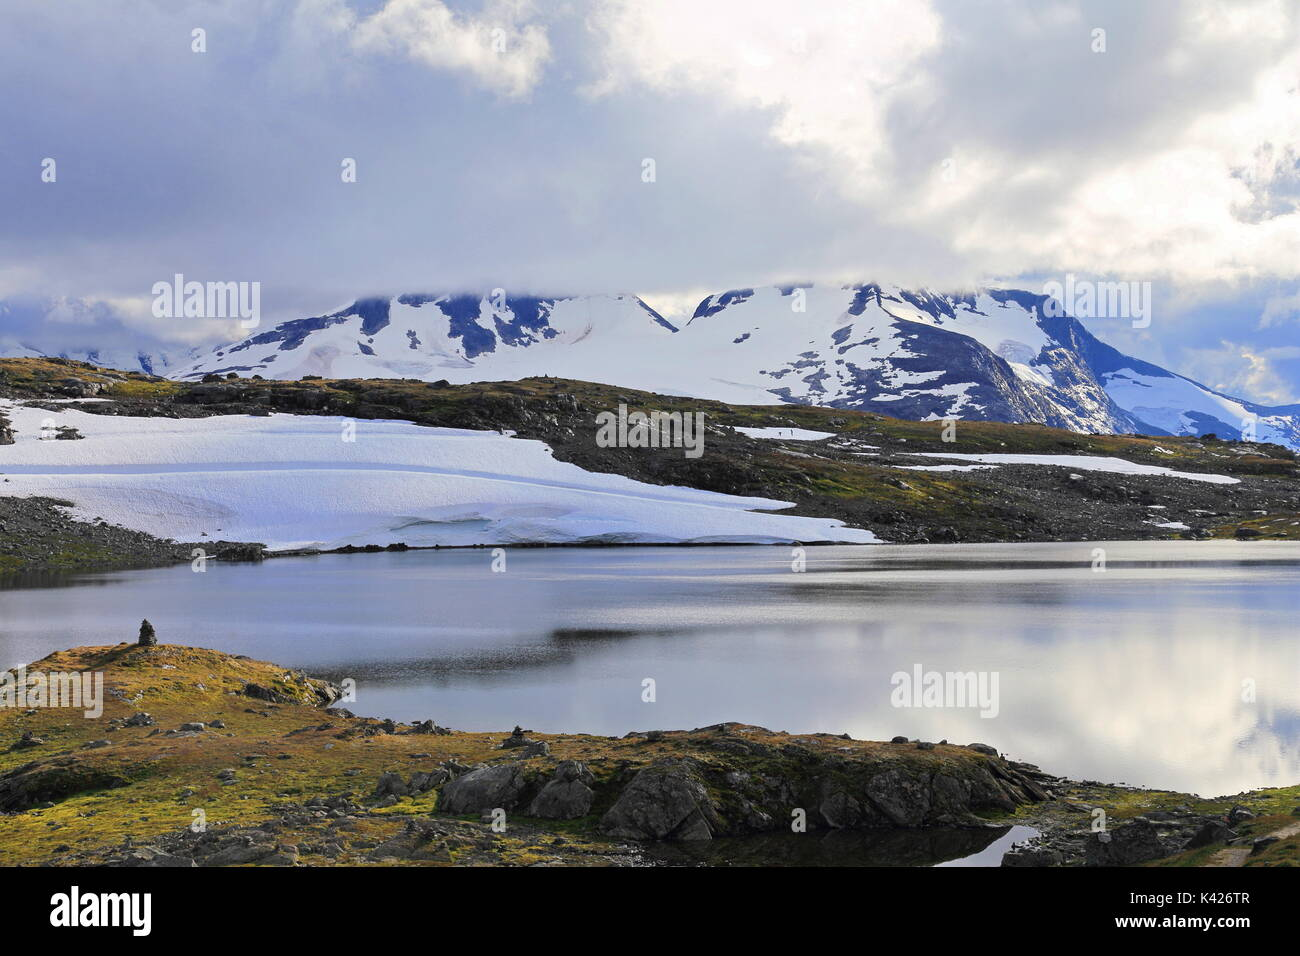 Scenery from Jotunheimen National Park in Norway - Stock Image